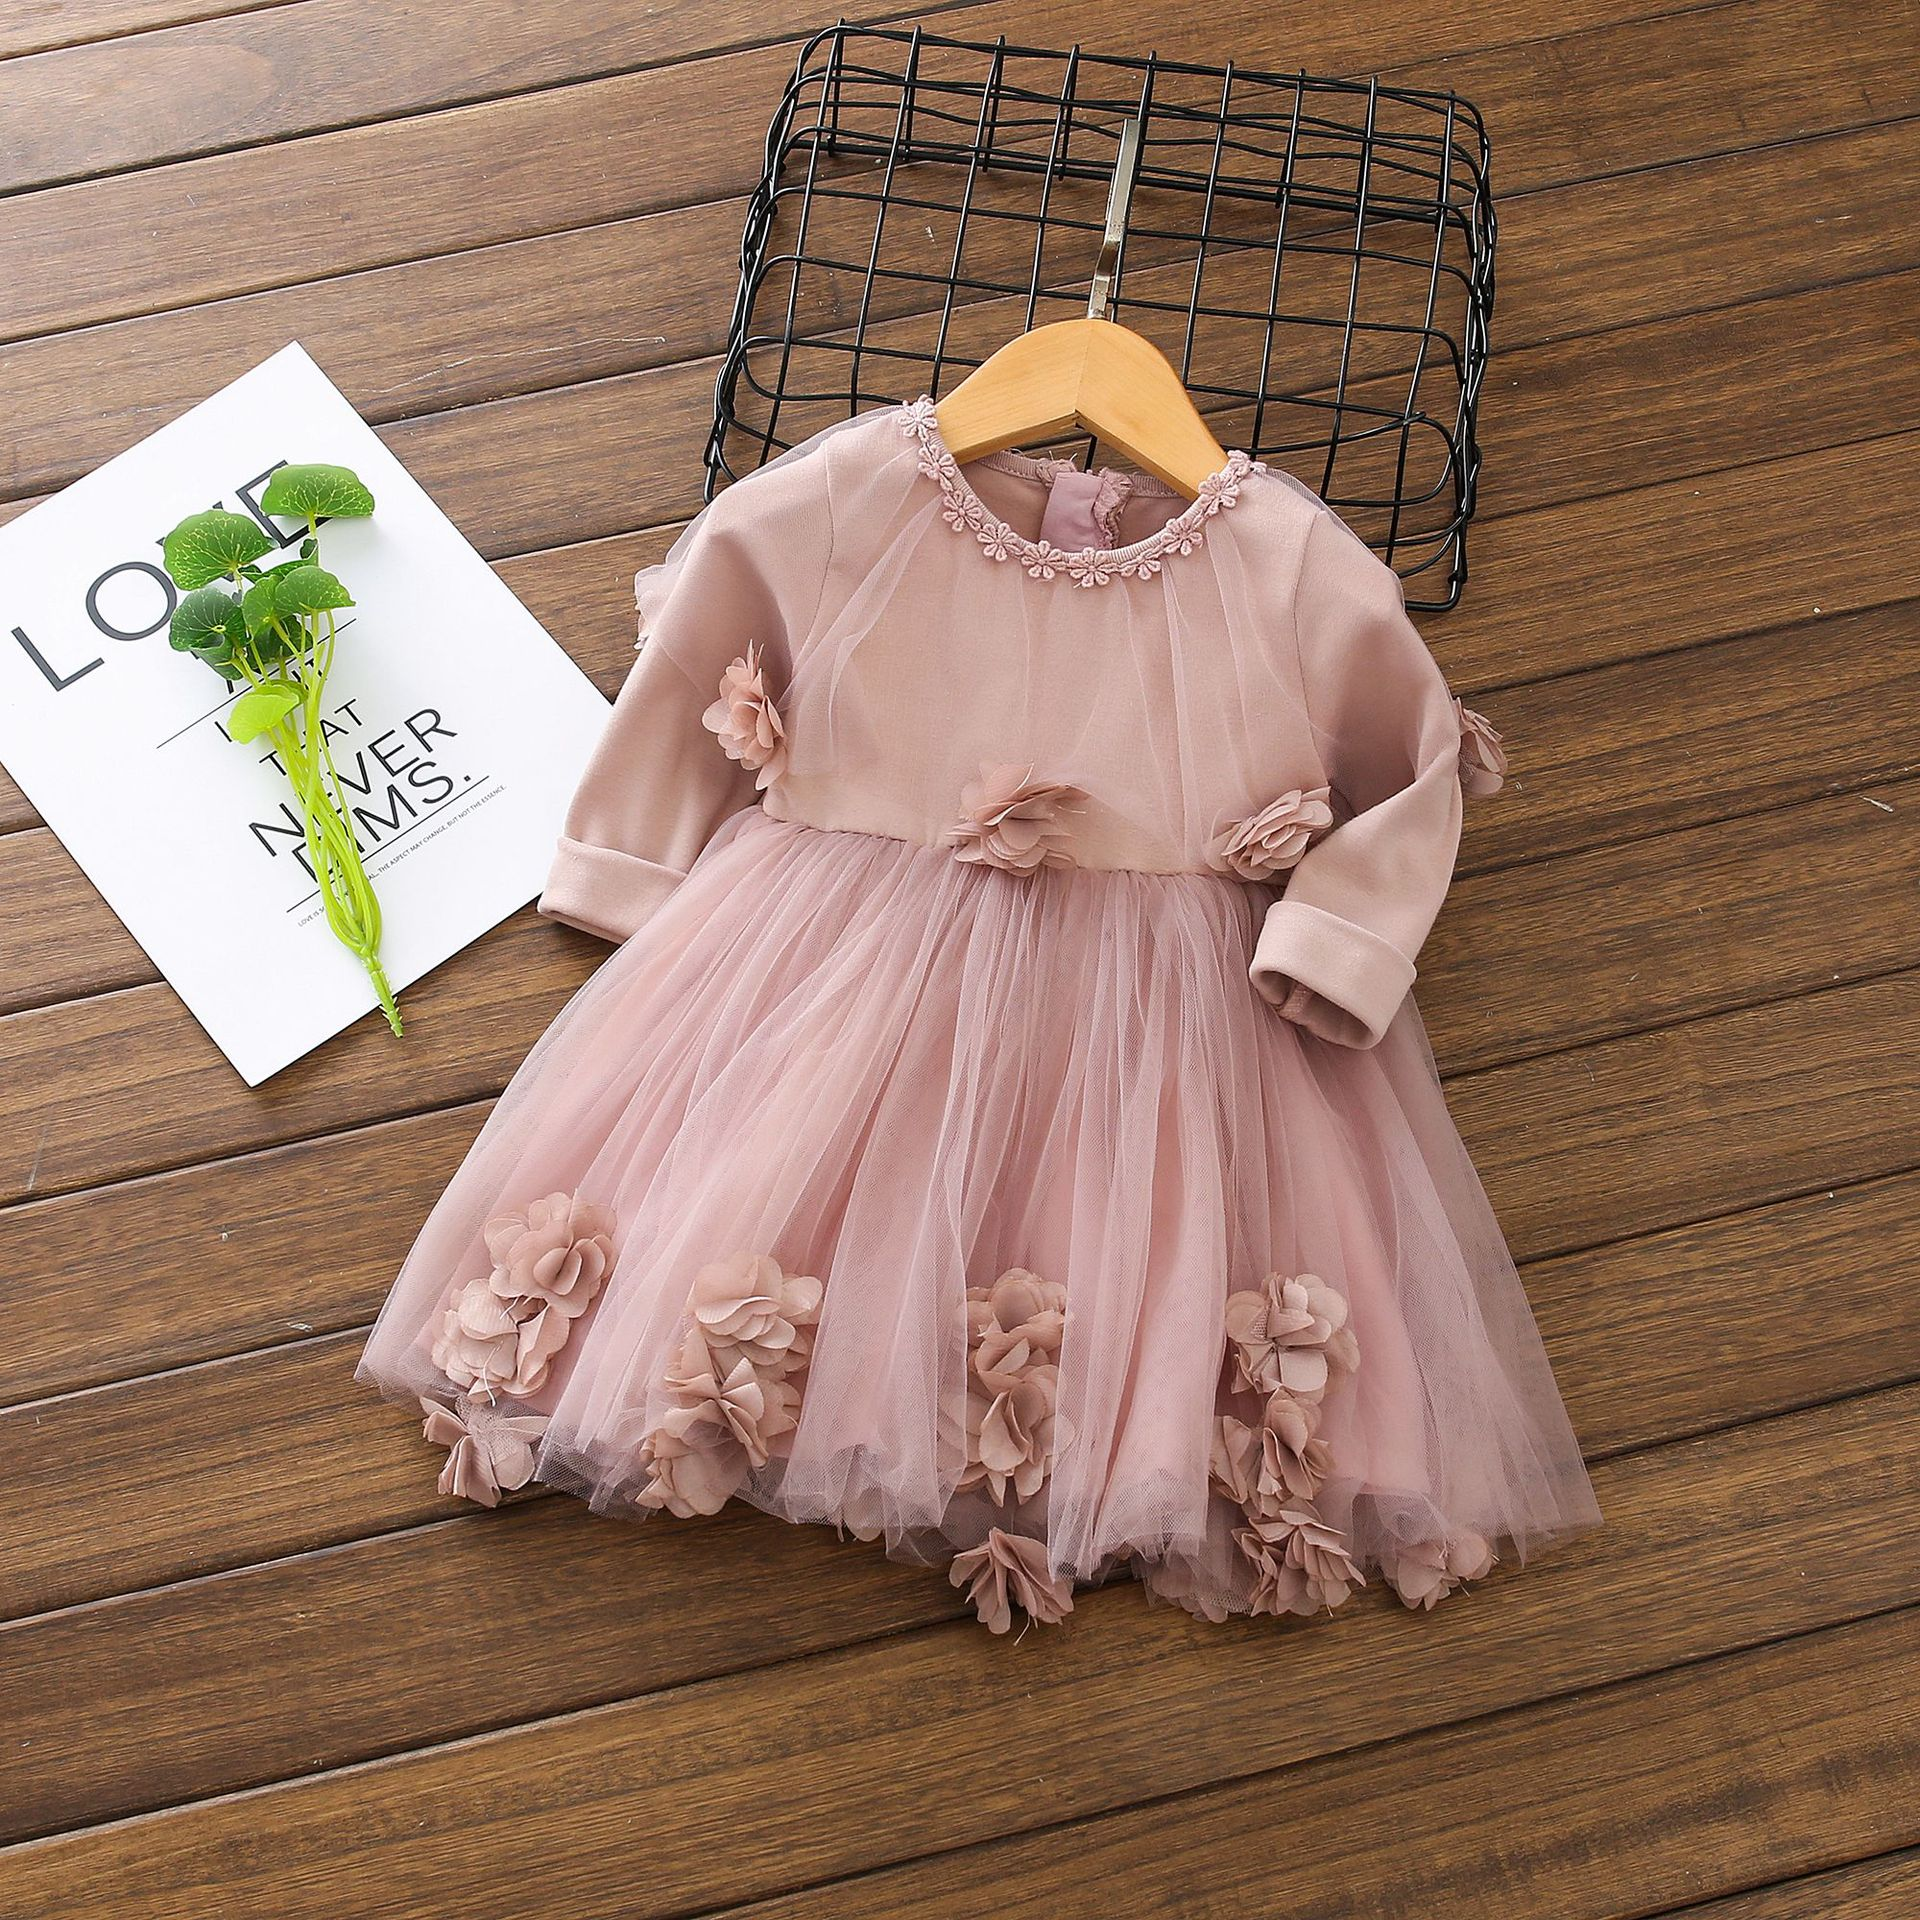 Children's Dress Girls Spring Korean 52 Flower Dresses Pink Princess Dress 1 2 3 YEARS